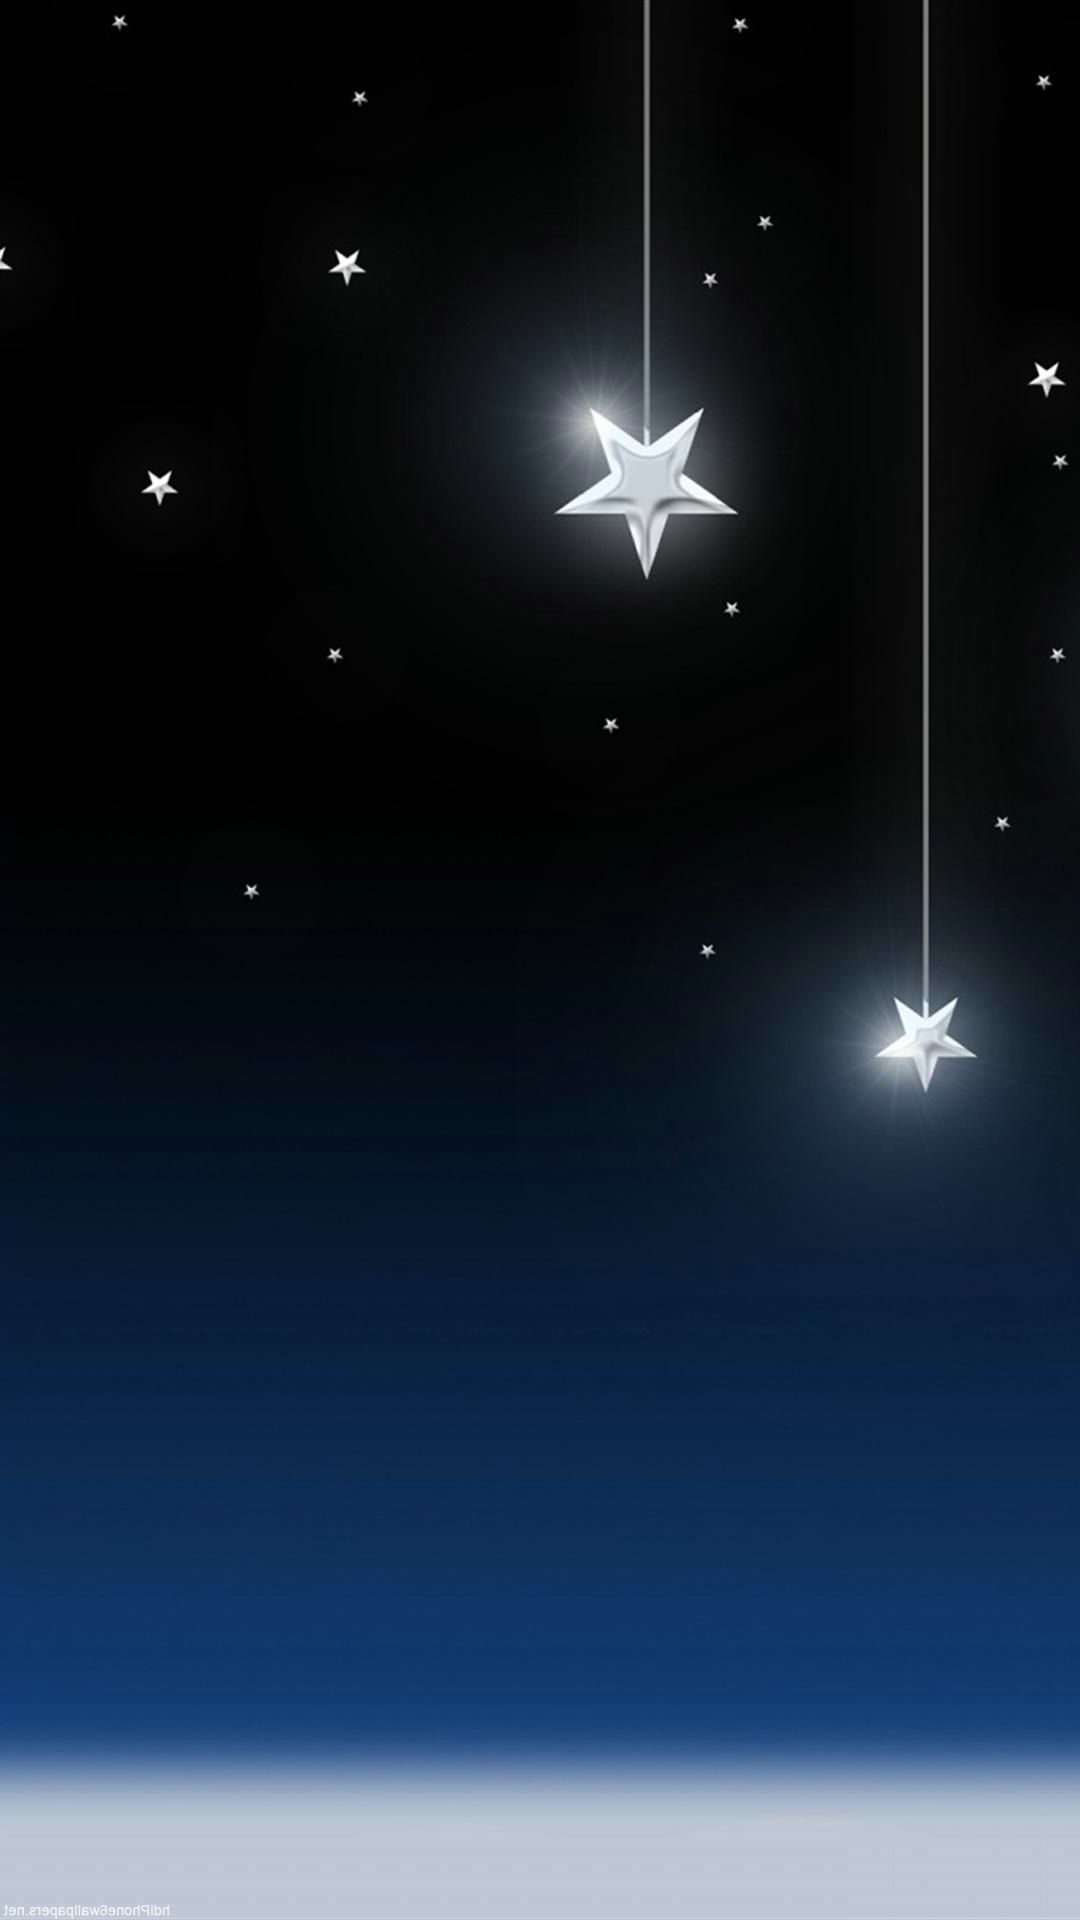 Cute Iphone Wallpaper Ideas Stars Wallpaper For Android Iphonewallpapers Pinterest